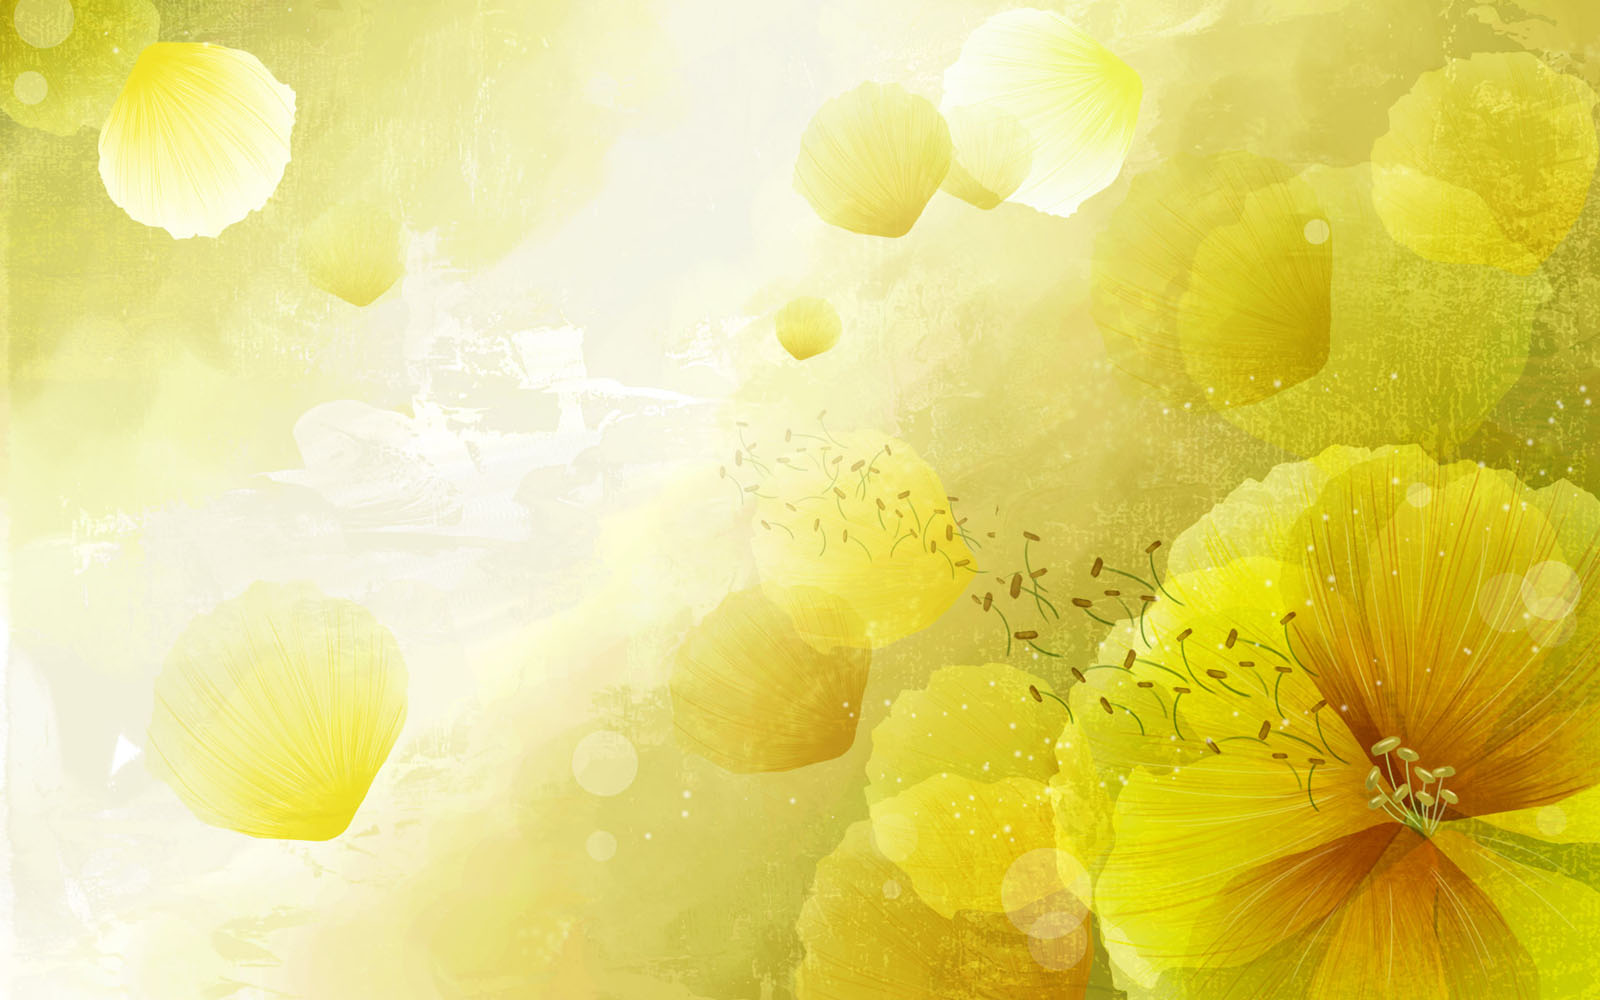 abstract-charming-yellow-flowers-vector-backgrounds.jpg - Tx Redbones